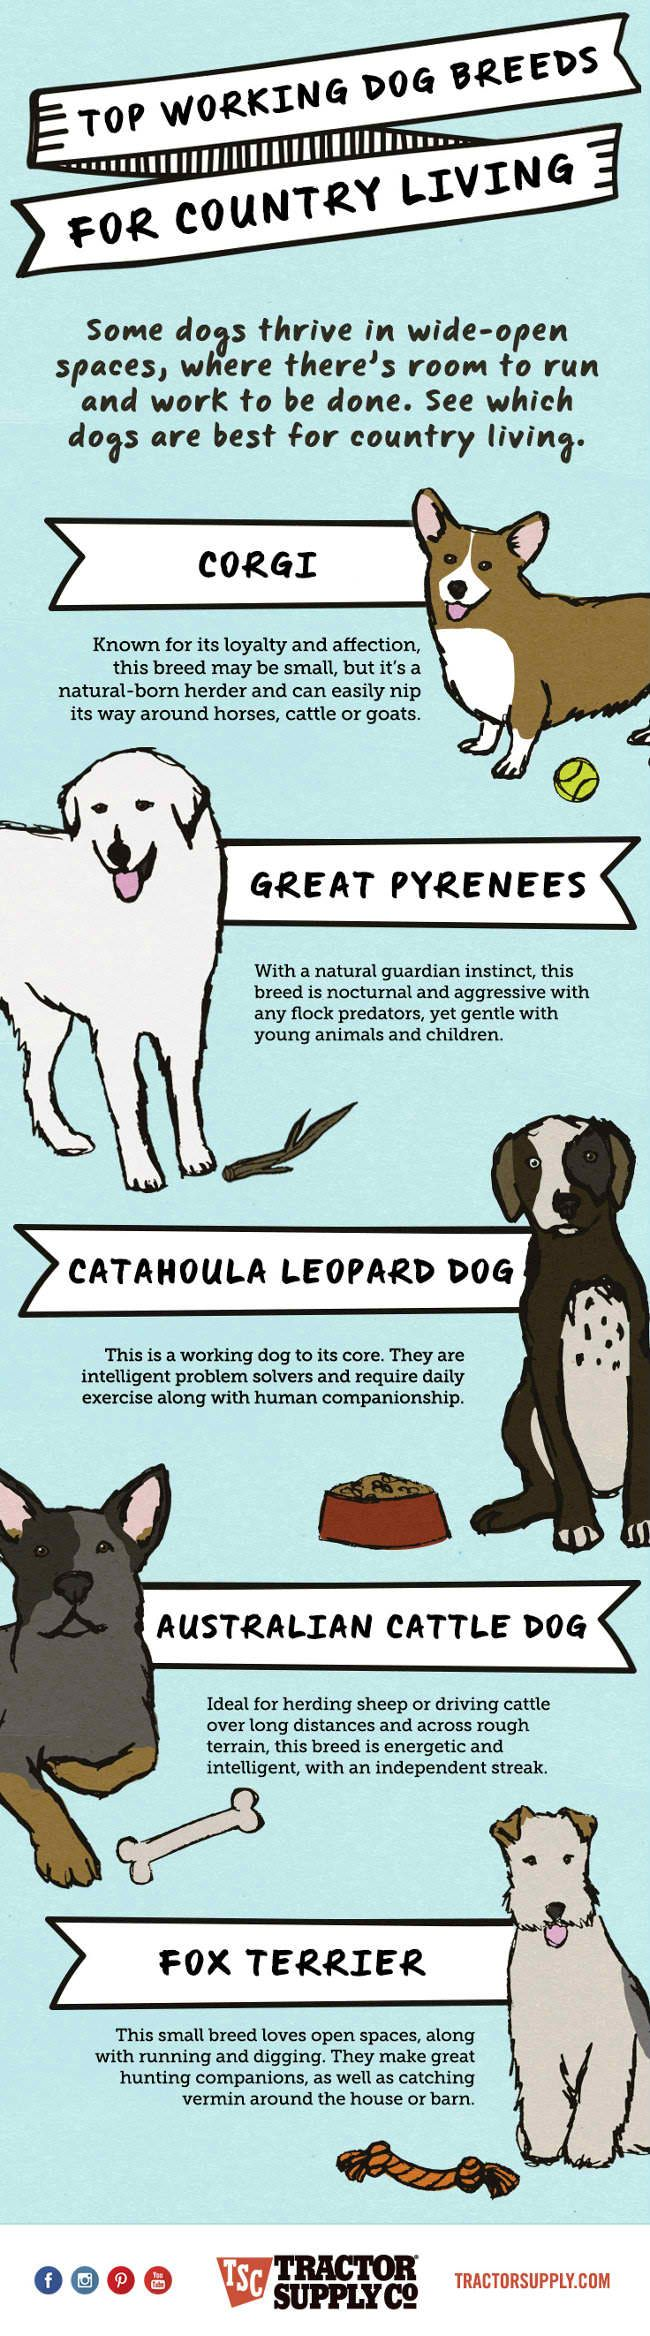 Top Working Dog Breeds For Country Living [Infographic]